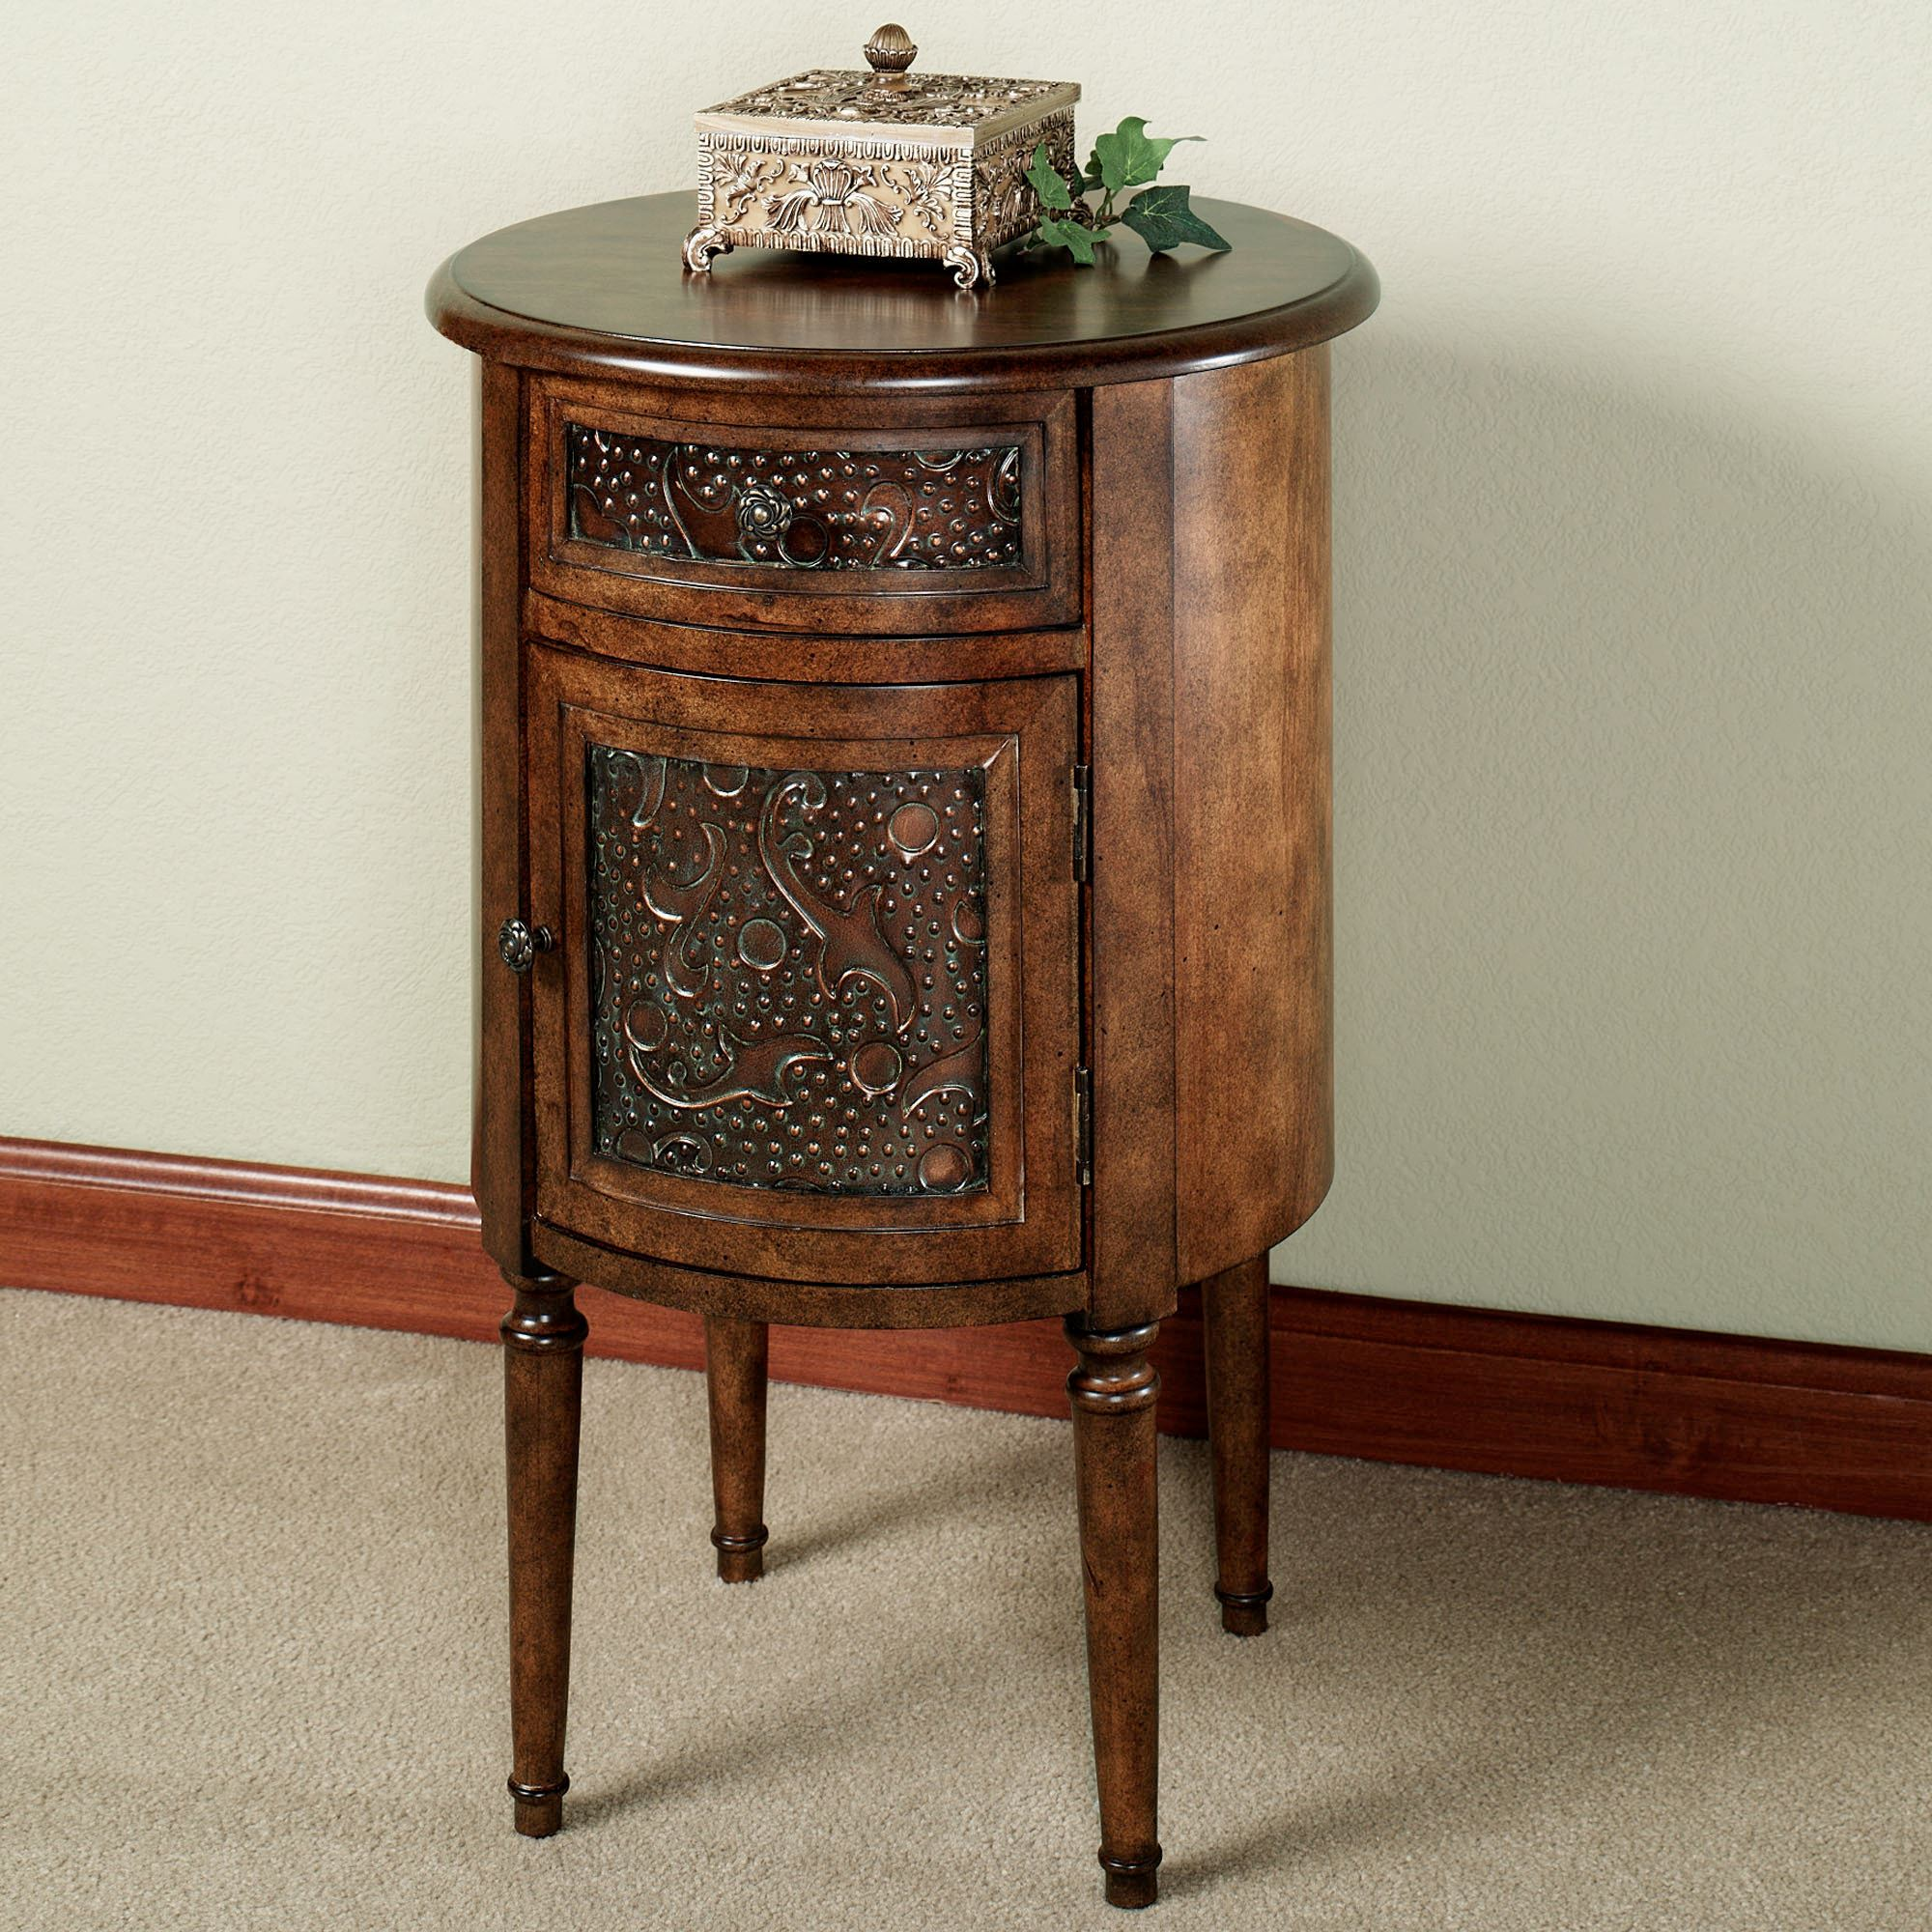 accent tables best corner table for small room traditional side bedroom end tall with storage cool round wood black and gold living full size oval dining john boos butcher block